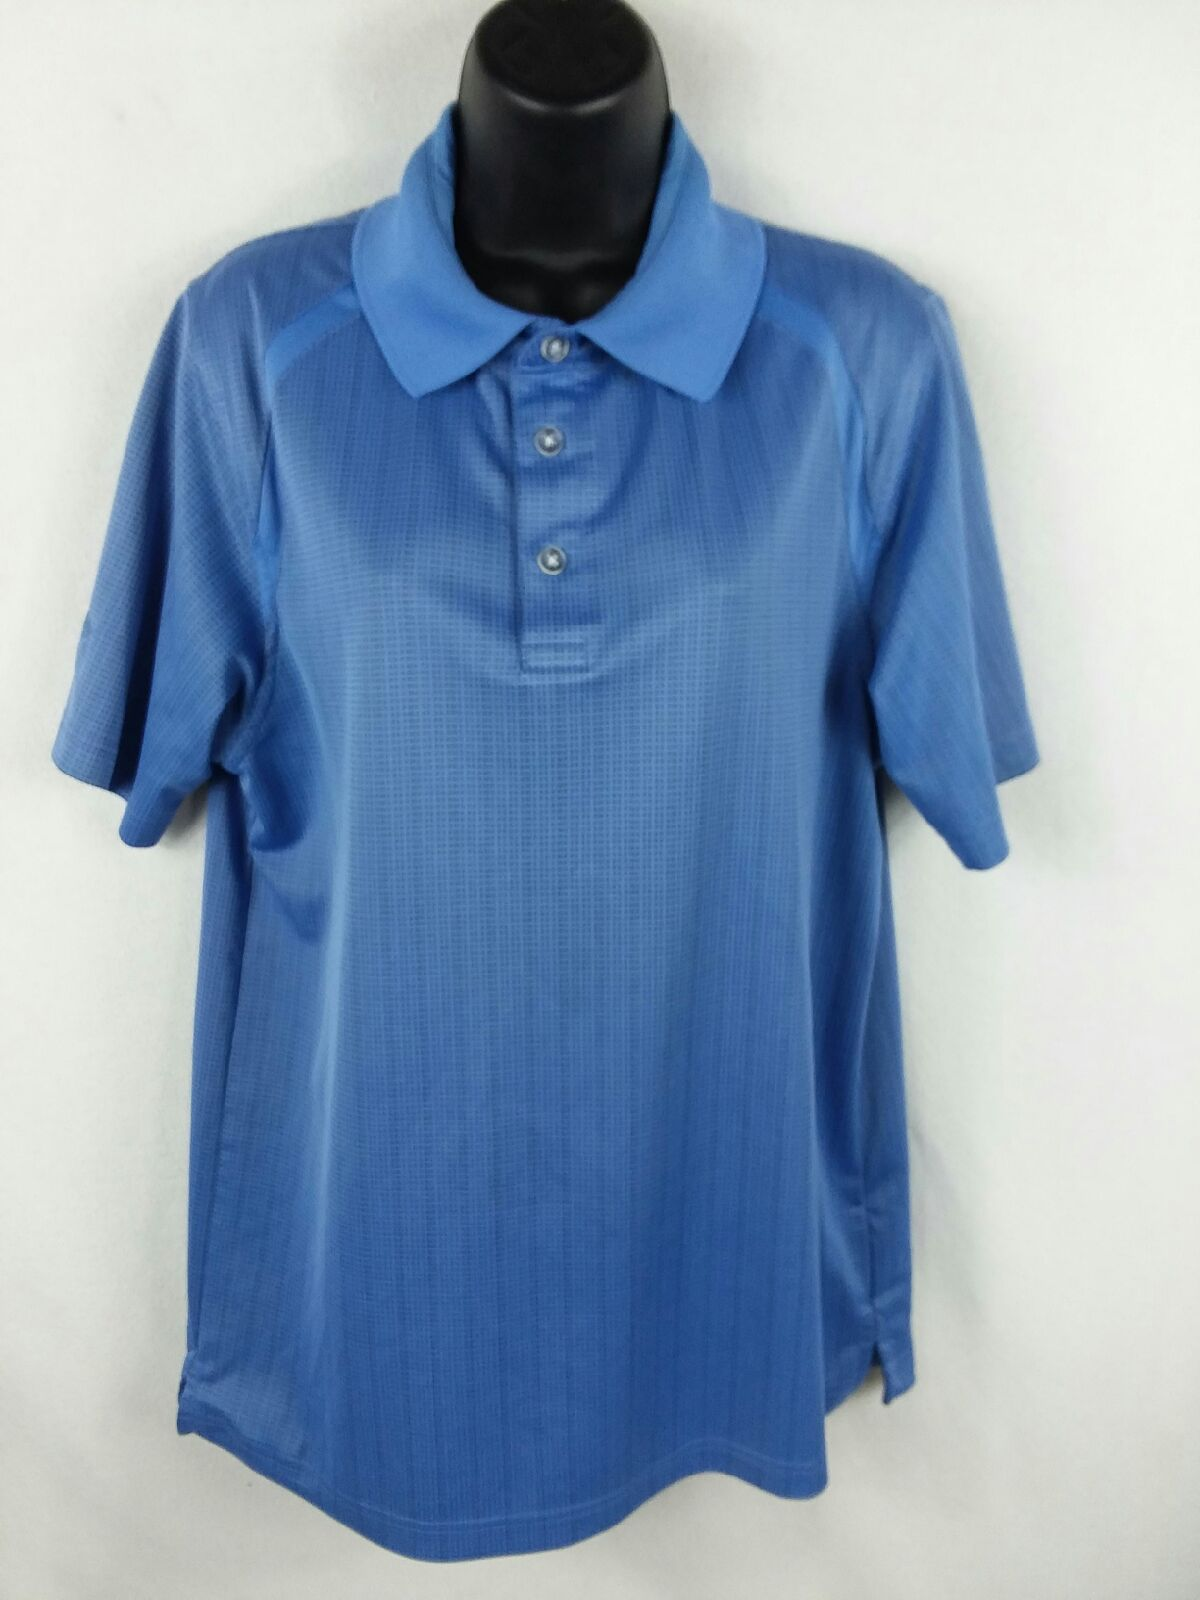 Callaway Golf Polo Mens Medium Shirt Blu